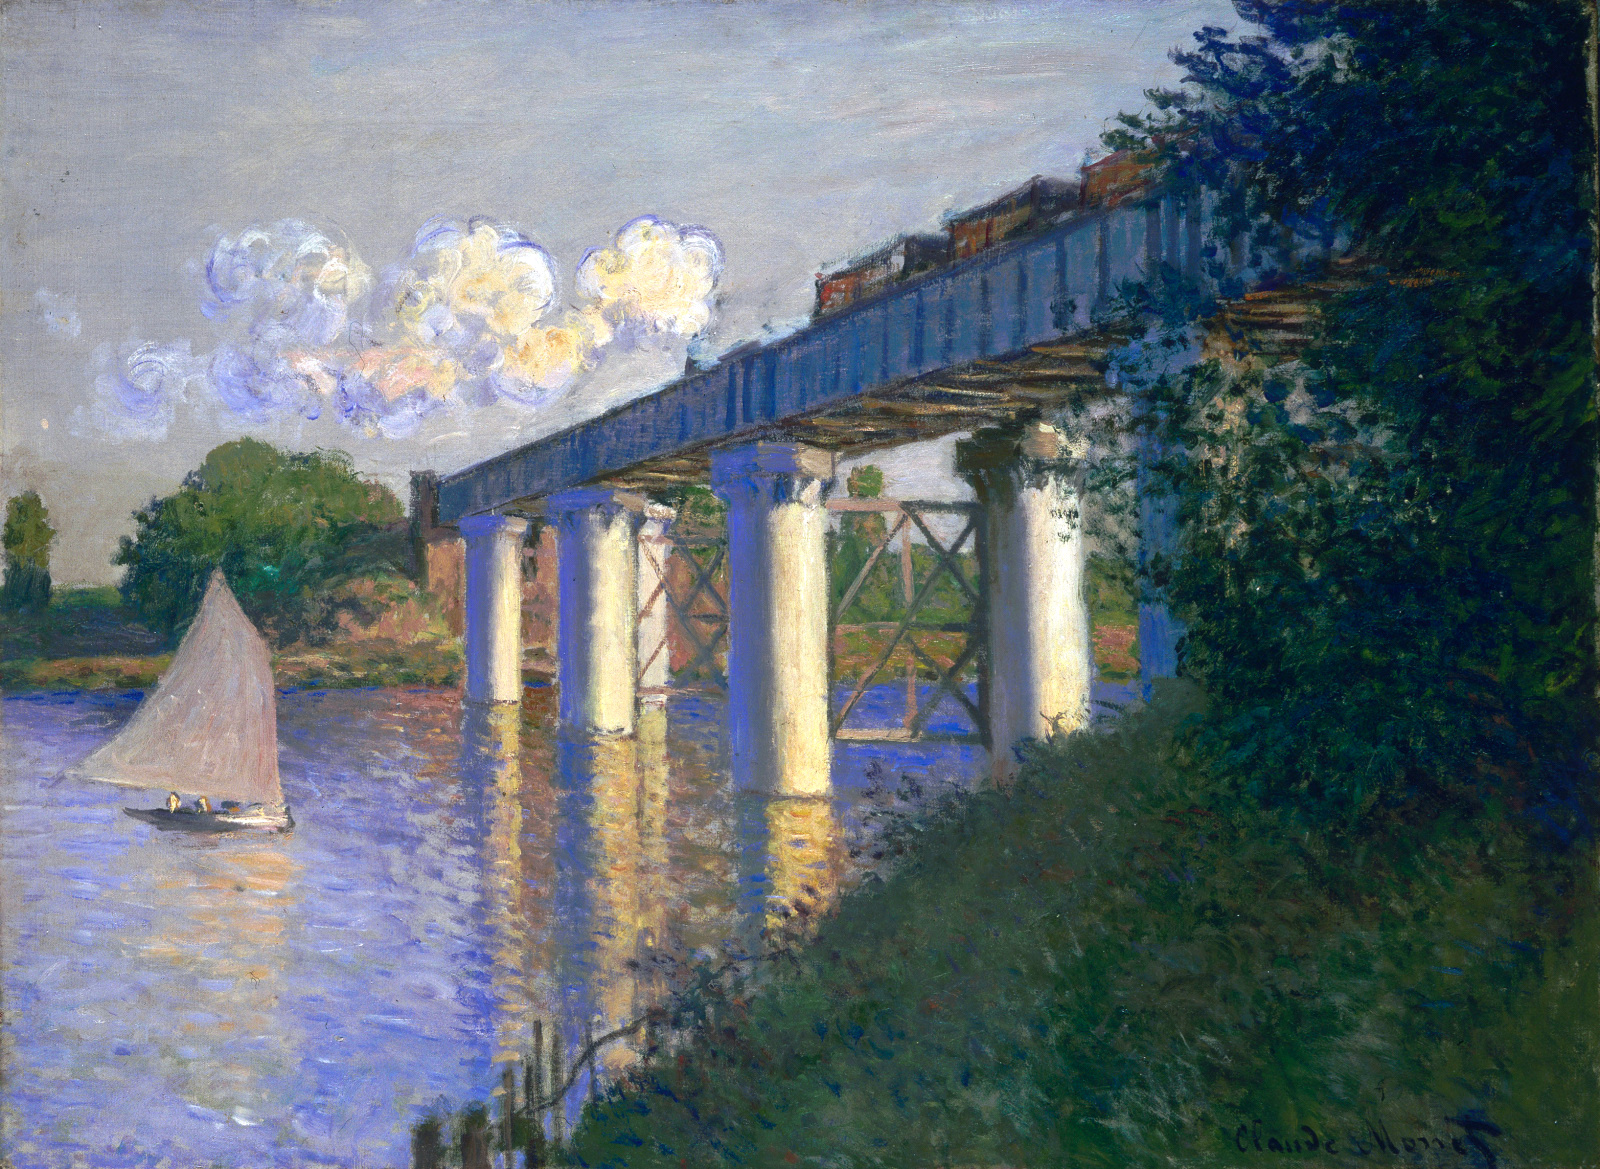 Claude Monet - Railway Bridge at Argenteuil 1874